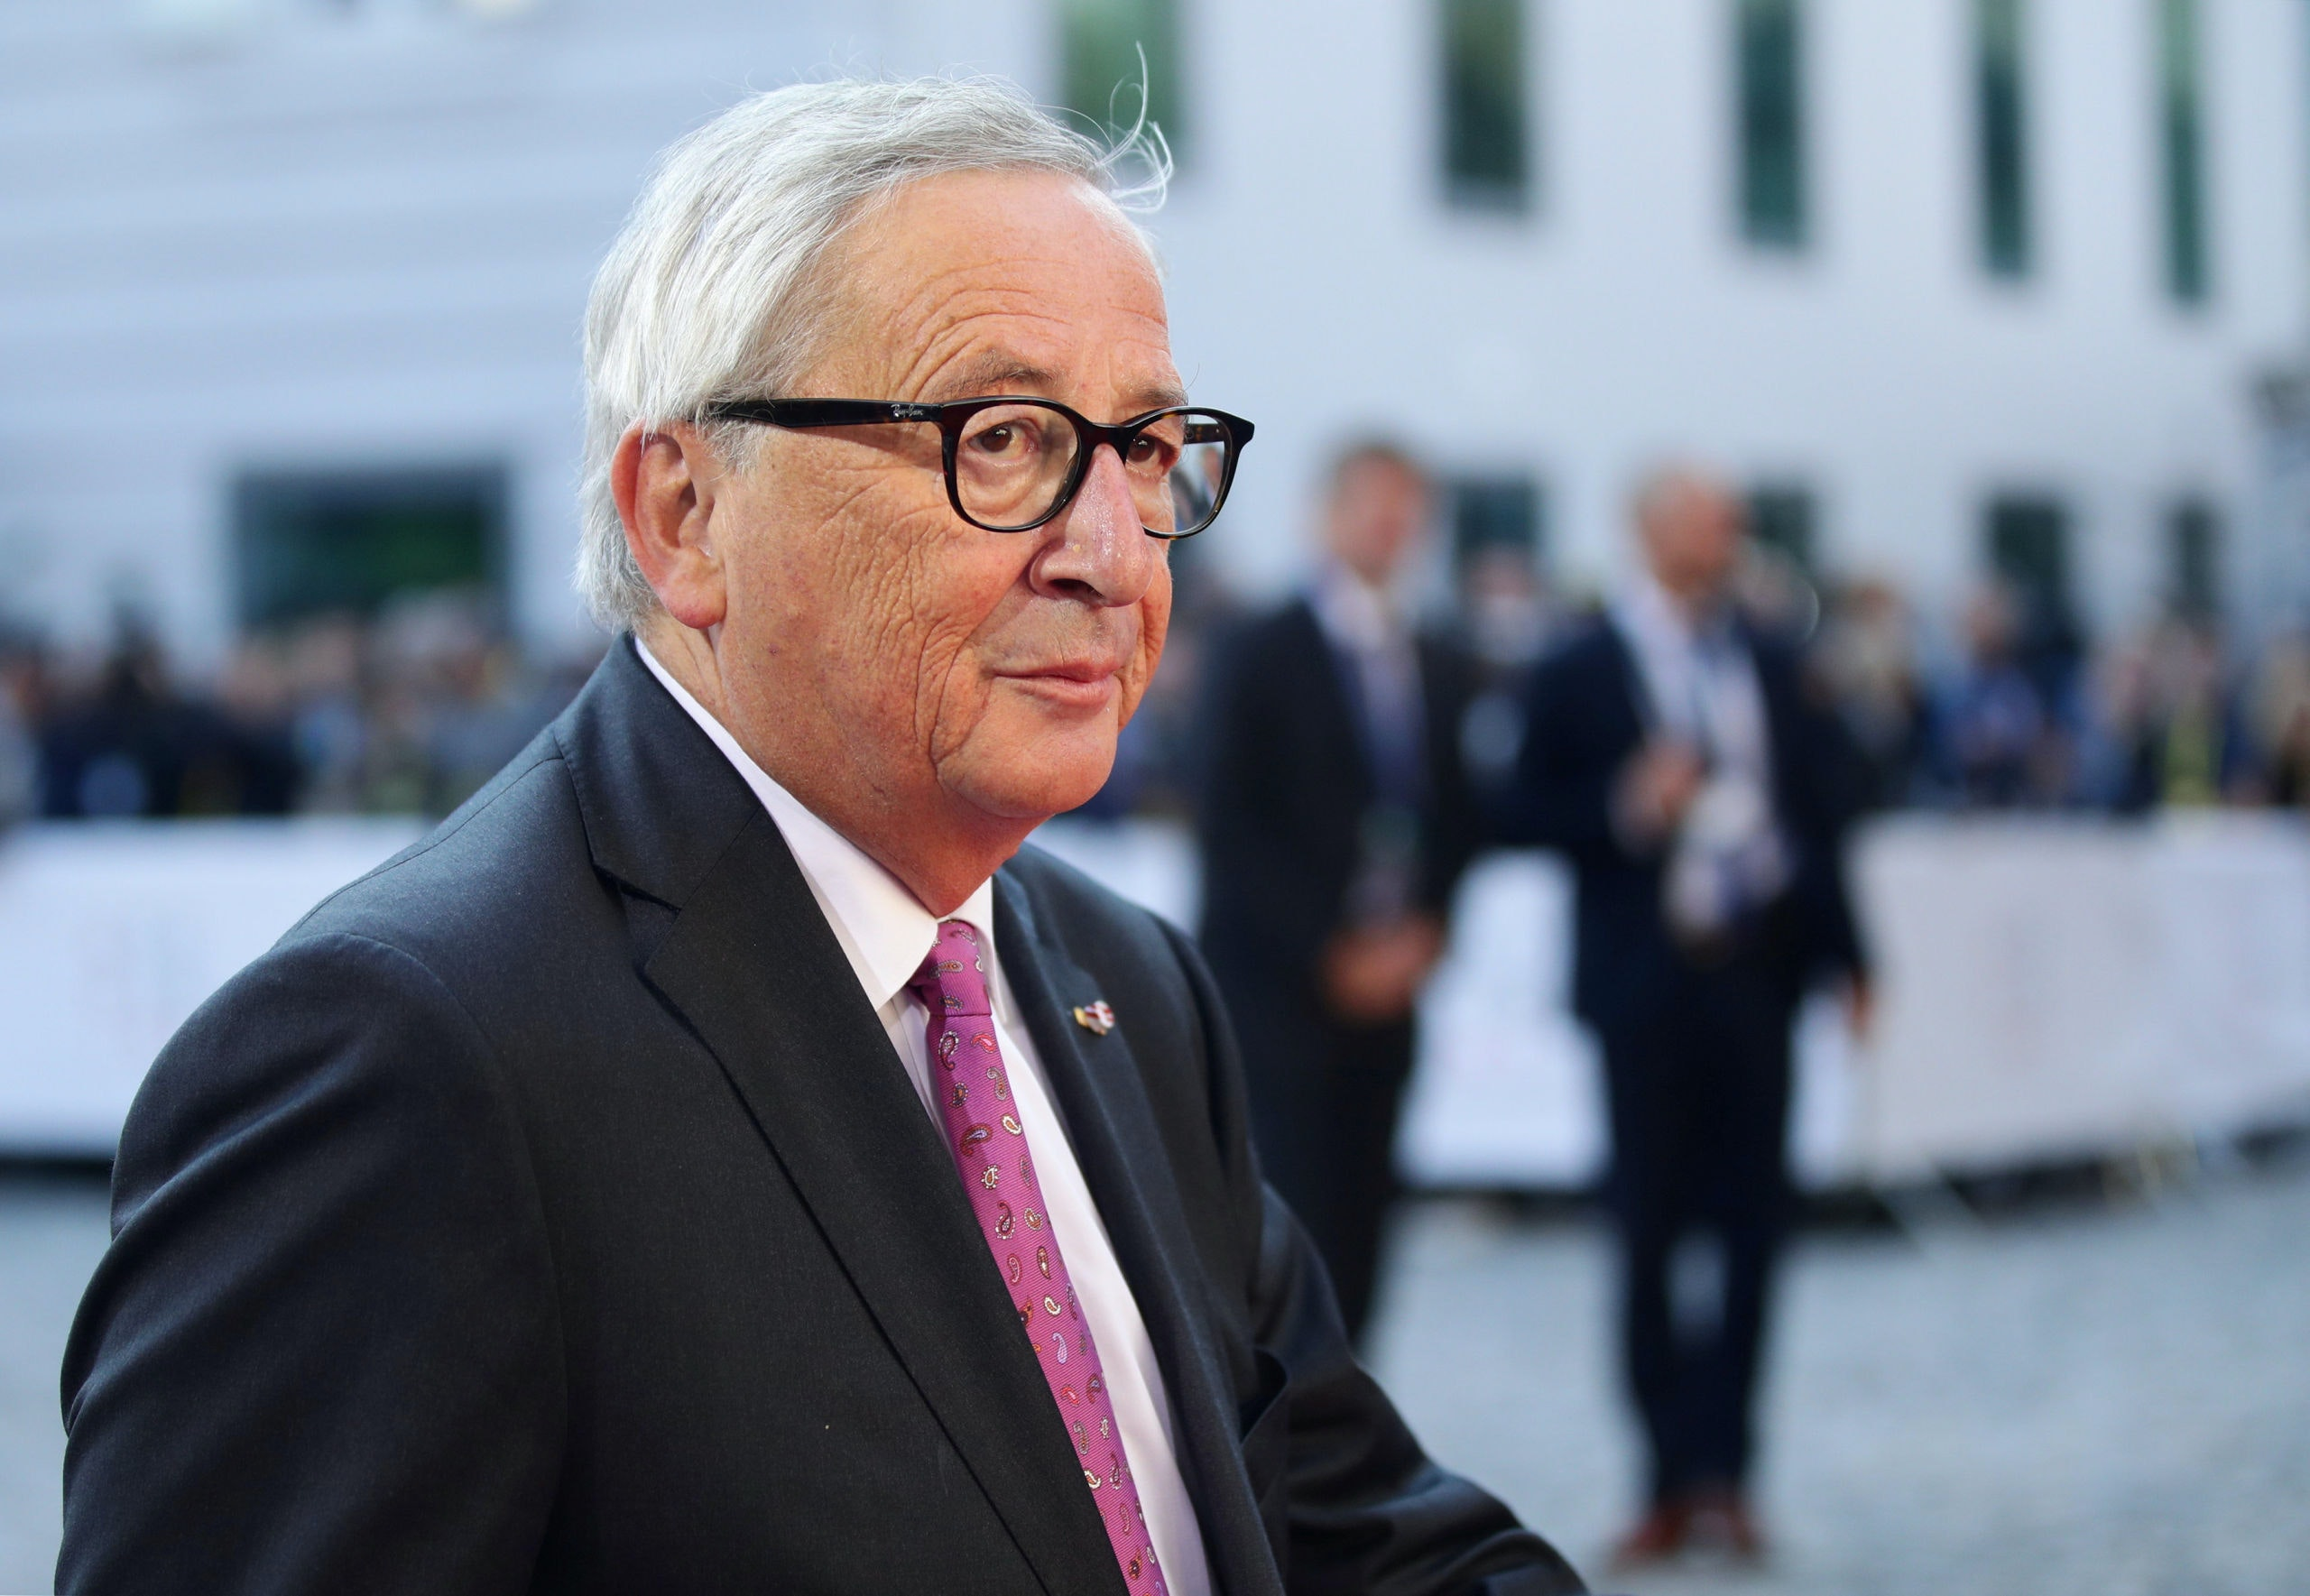 FILE PHOTO: European Commission President Jean-Claude Juncker arrives for the informal meeting of European Union leaders in Salzburg, Austria, September 20, 2018. REUTERS/Lisi Niesner/File Photo